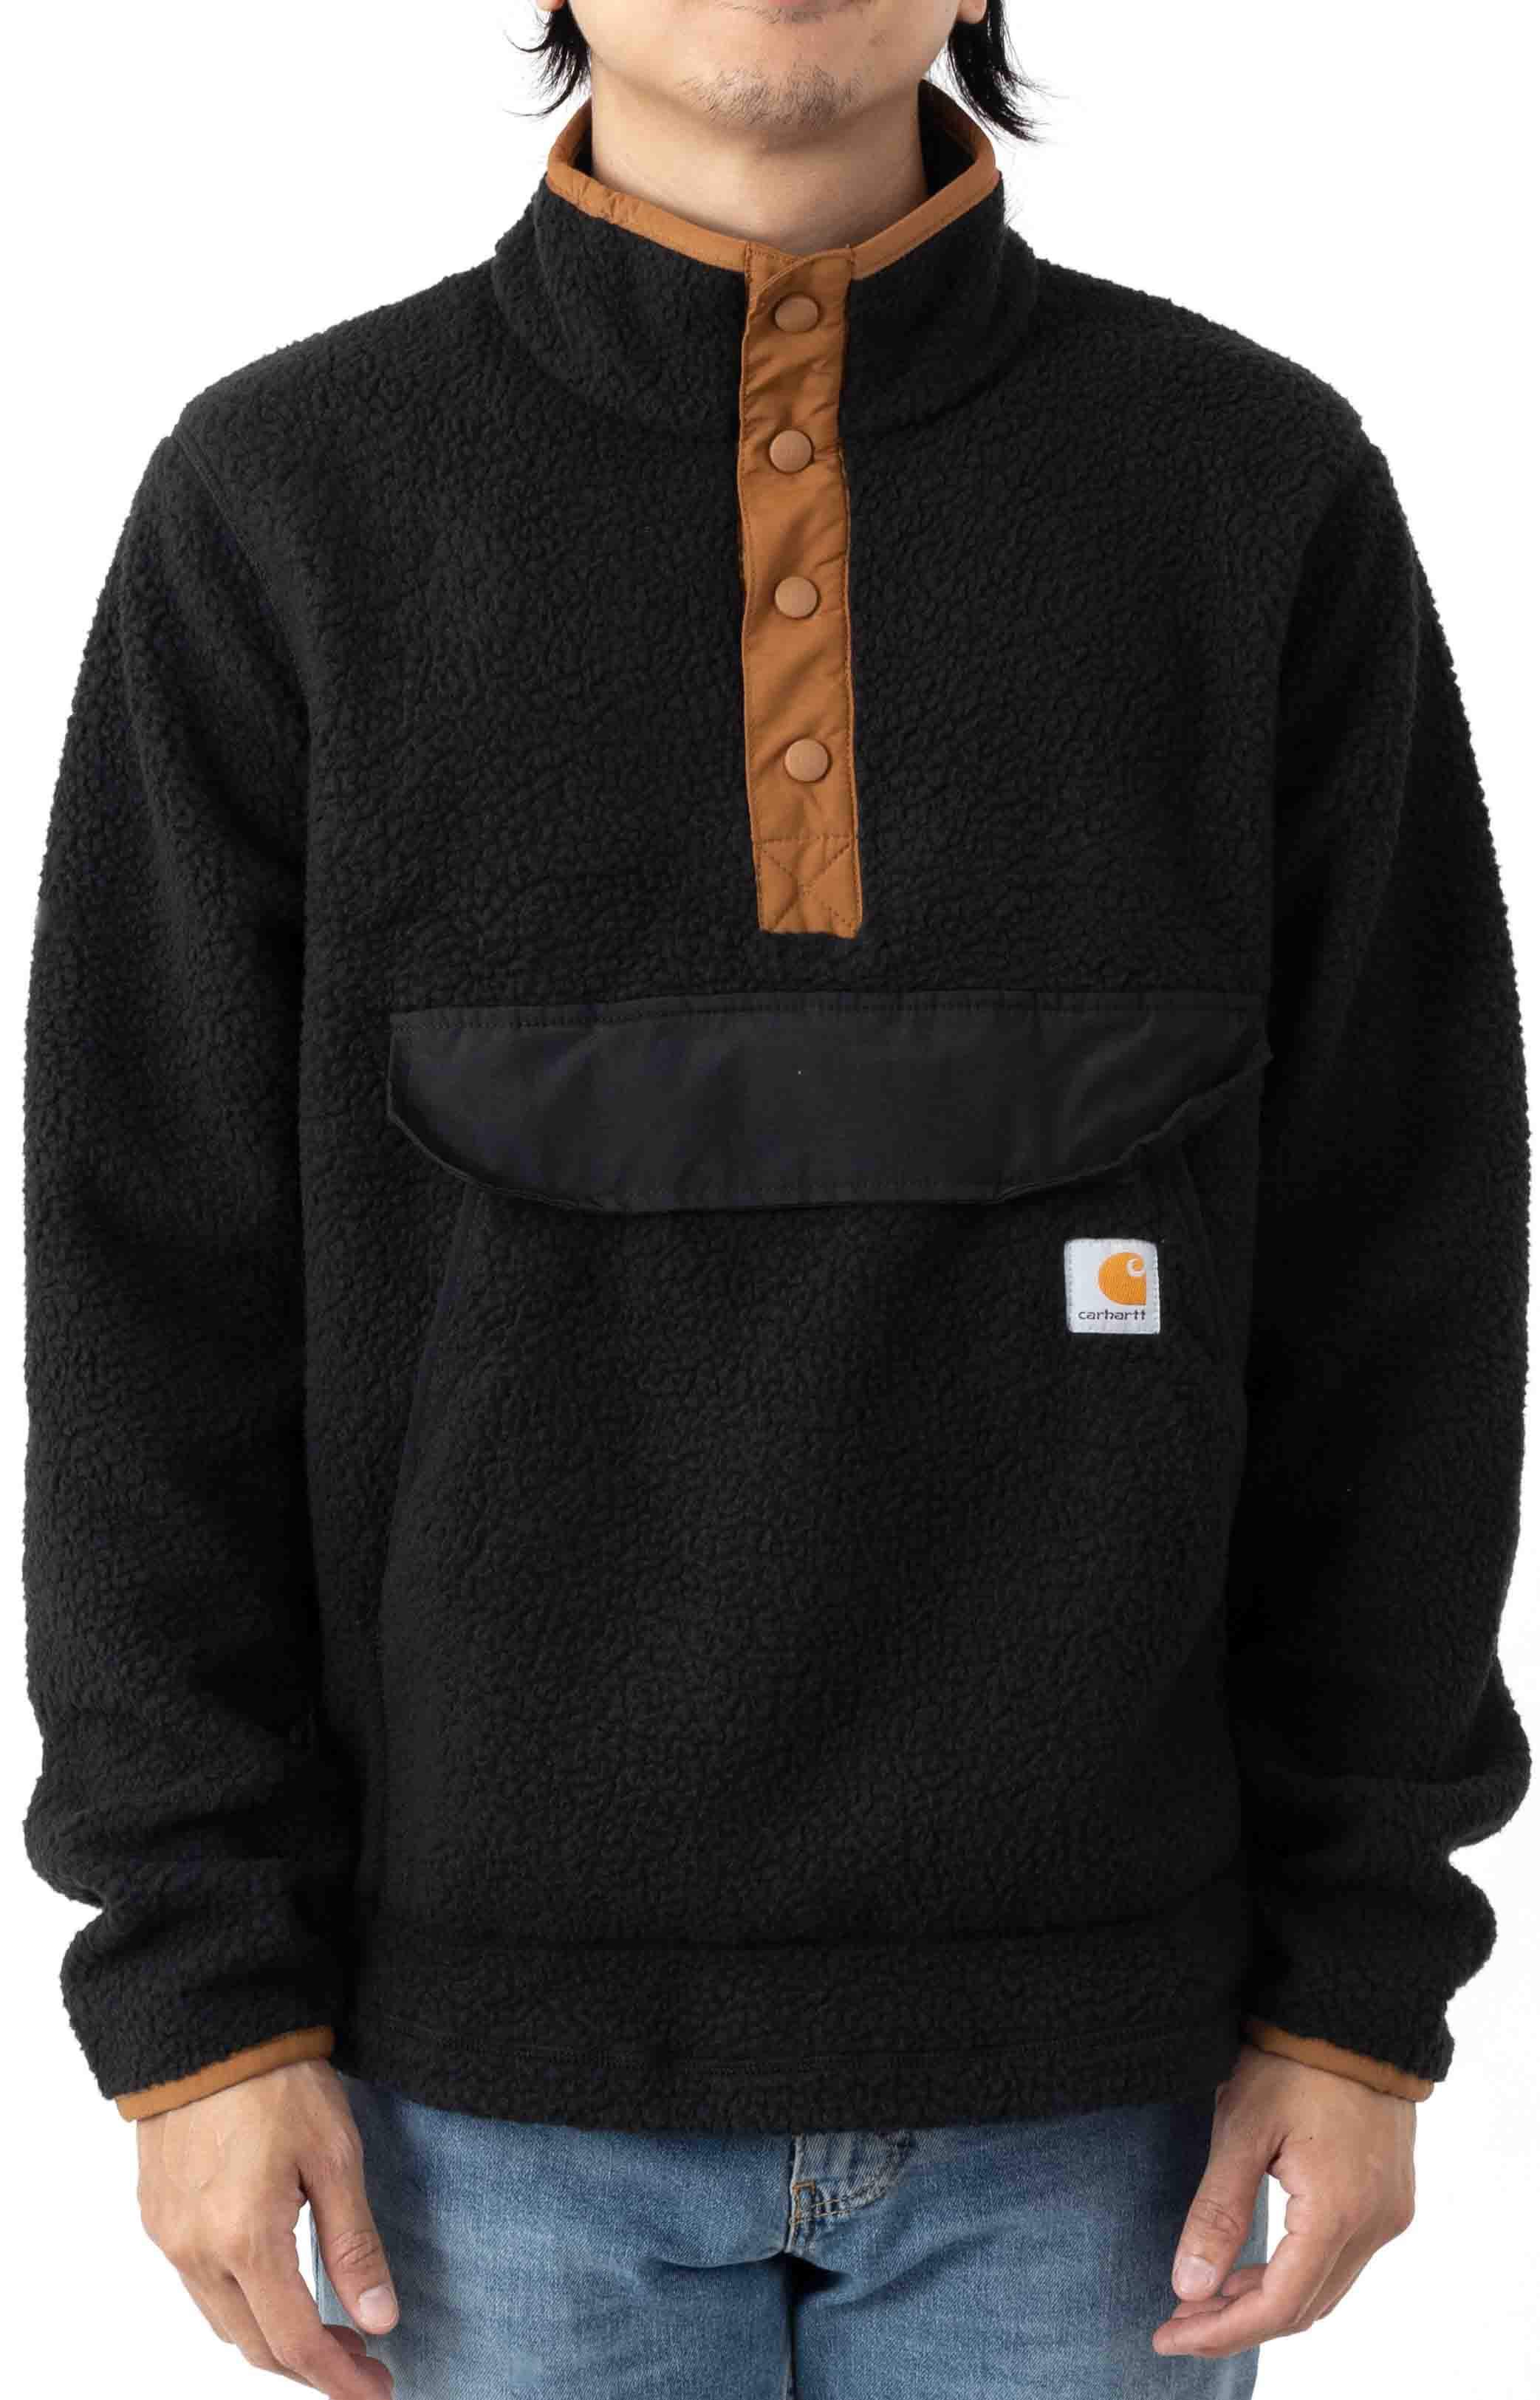 (104991) Relaxed Fit Fleece Snap Front Jacket - Black